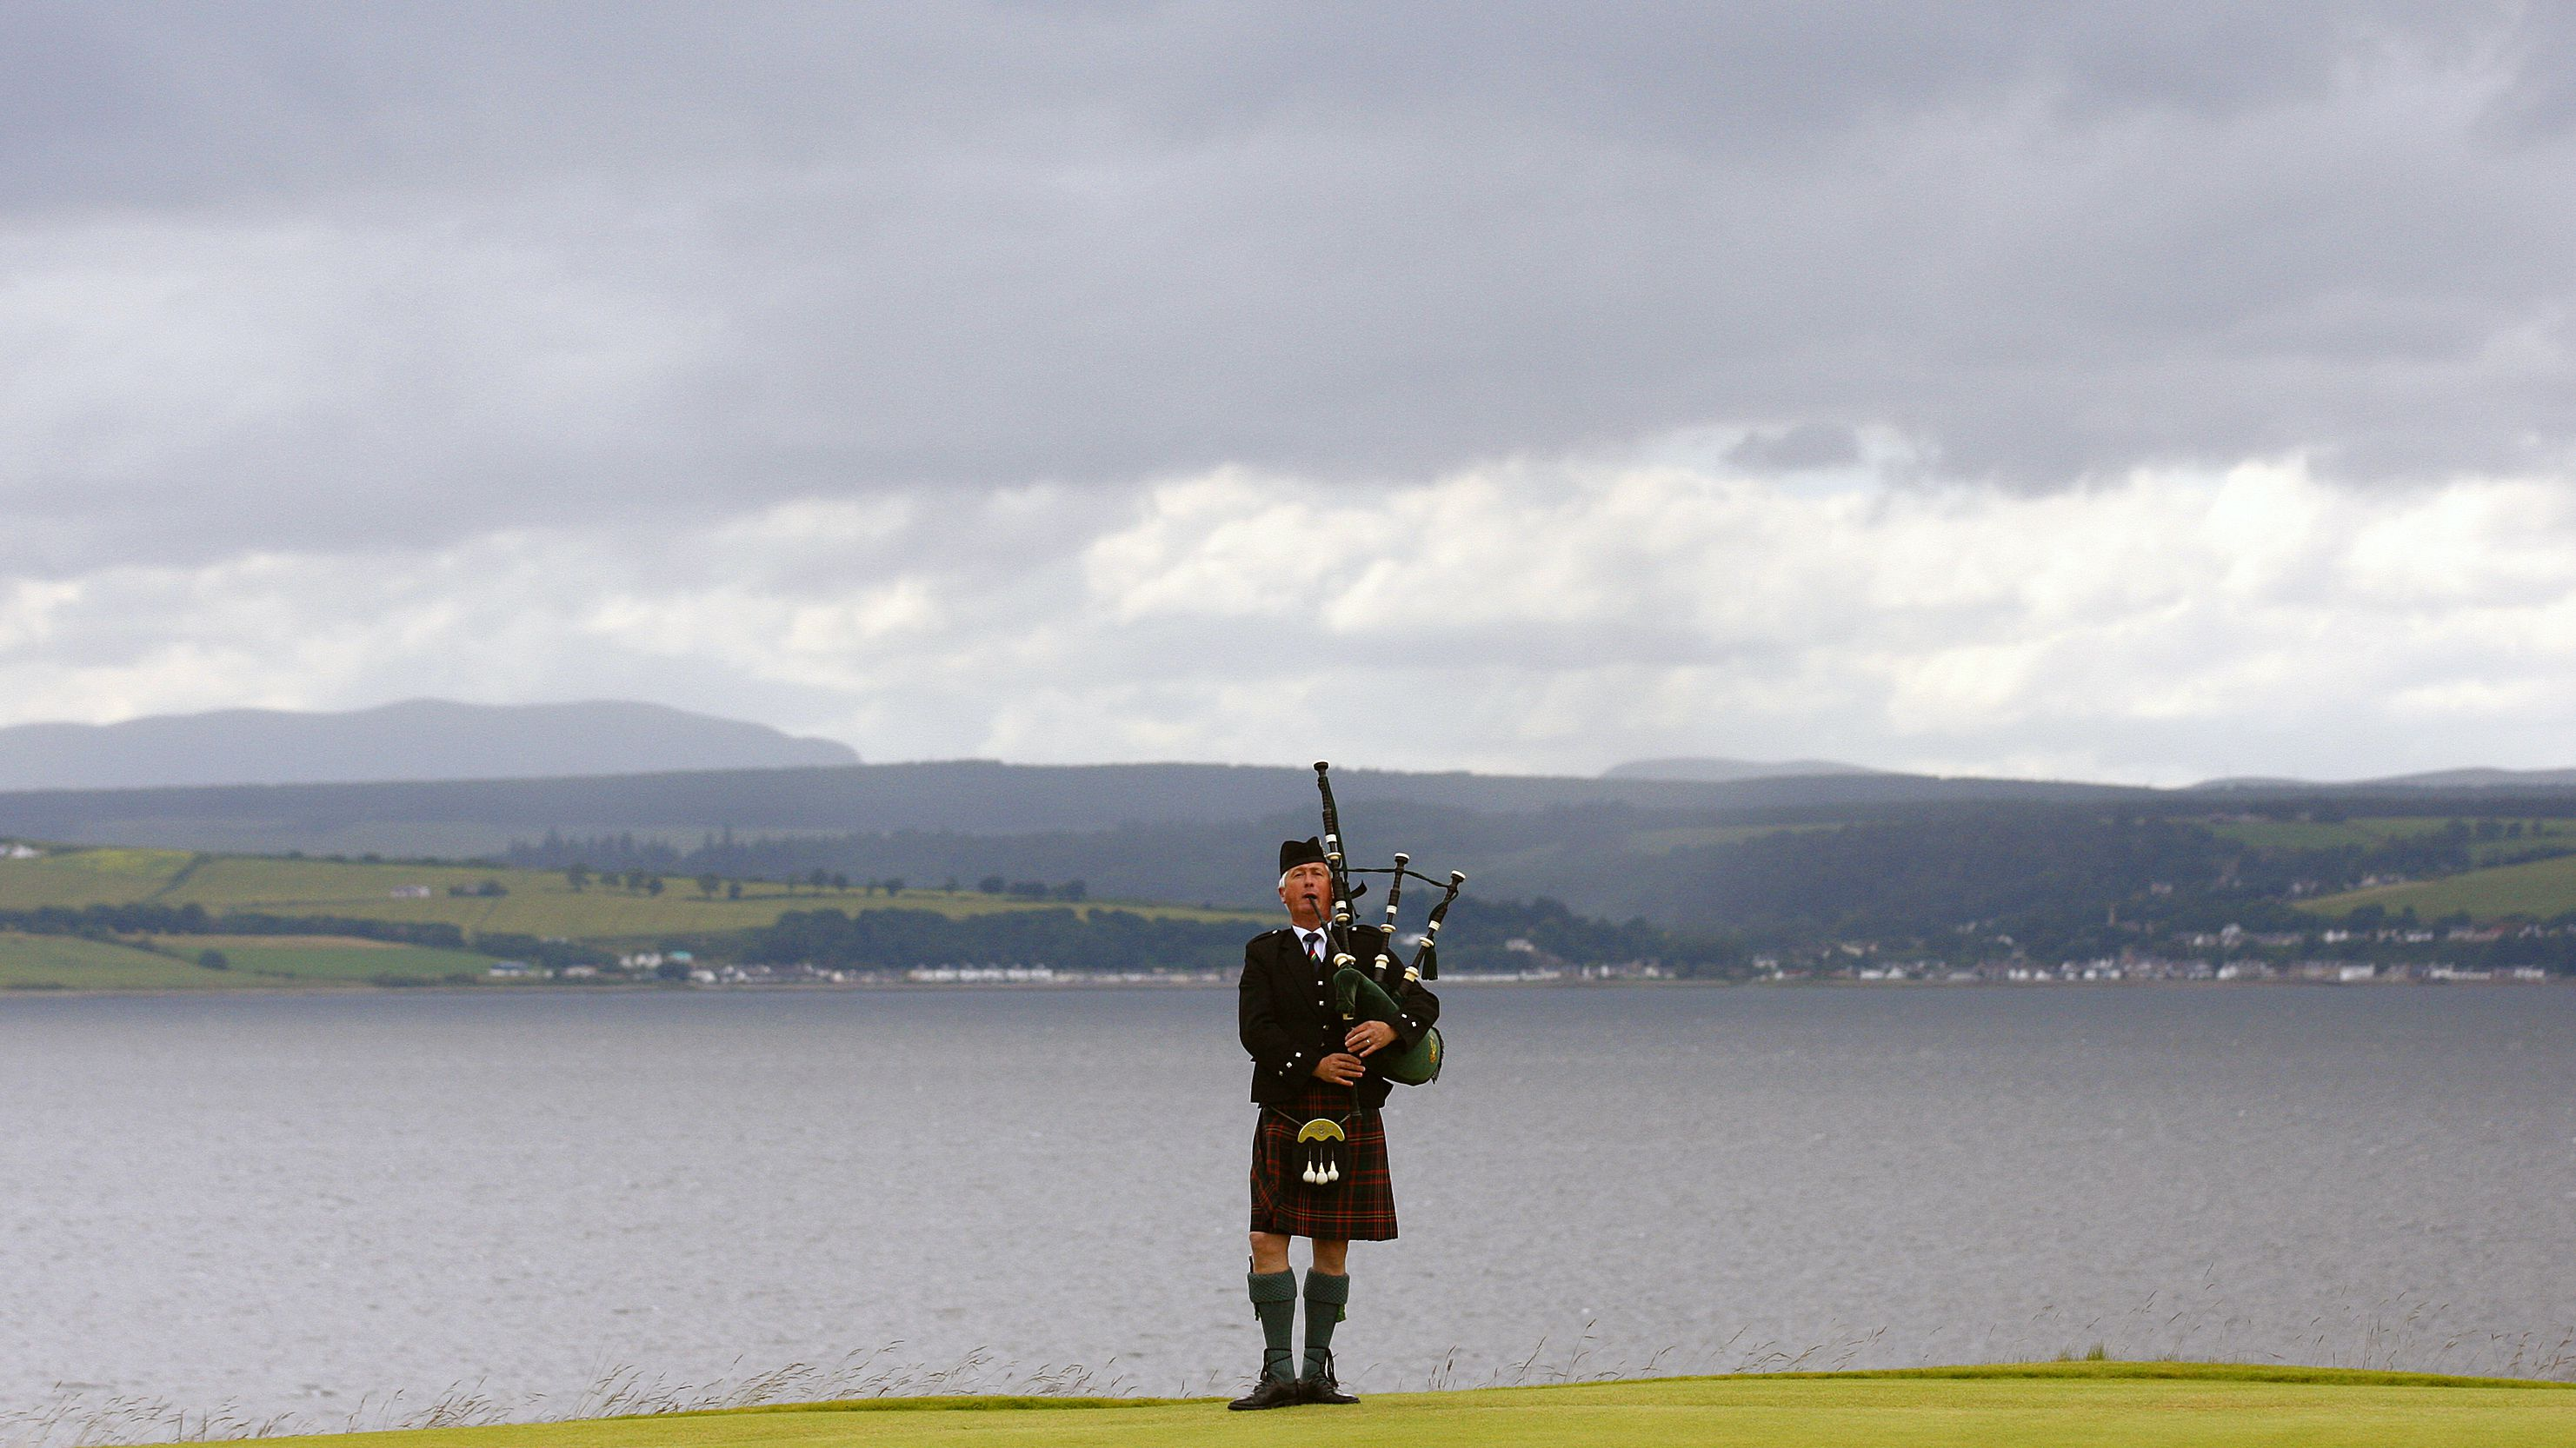 A bagpiper plays on the 18th green before the winner's presentation ceremony of the Scottish Open golf tournament at Castle Stuart golf course near Inverness, Scotland July 15, 2012. REUTERS/David Moir (BRITAIN - Tags: SPORT GOLF TPX IMAGES OF THE DAY)